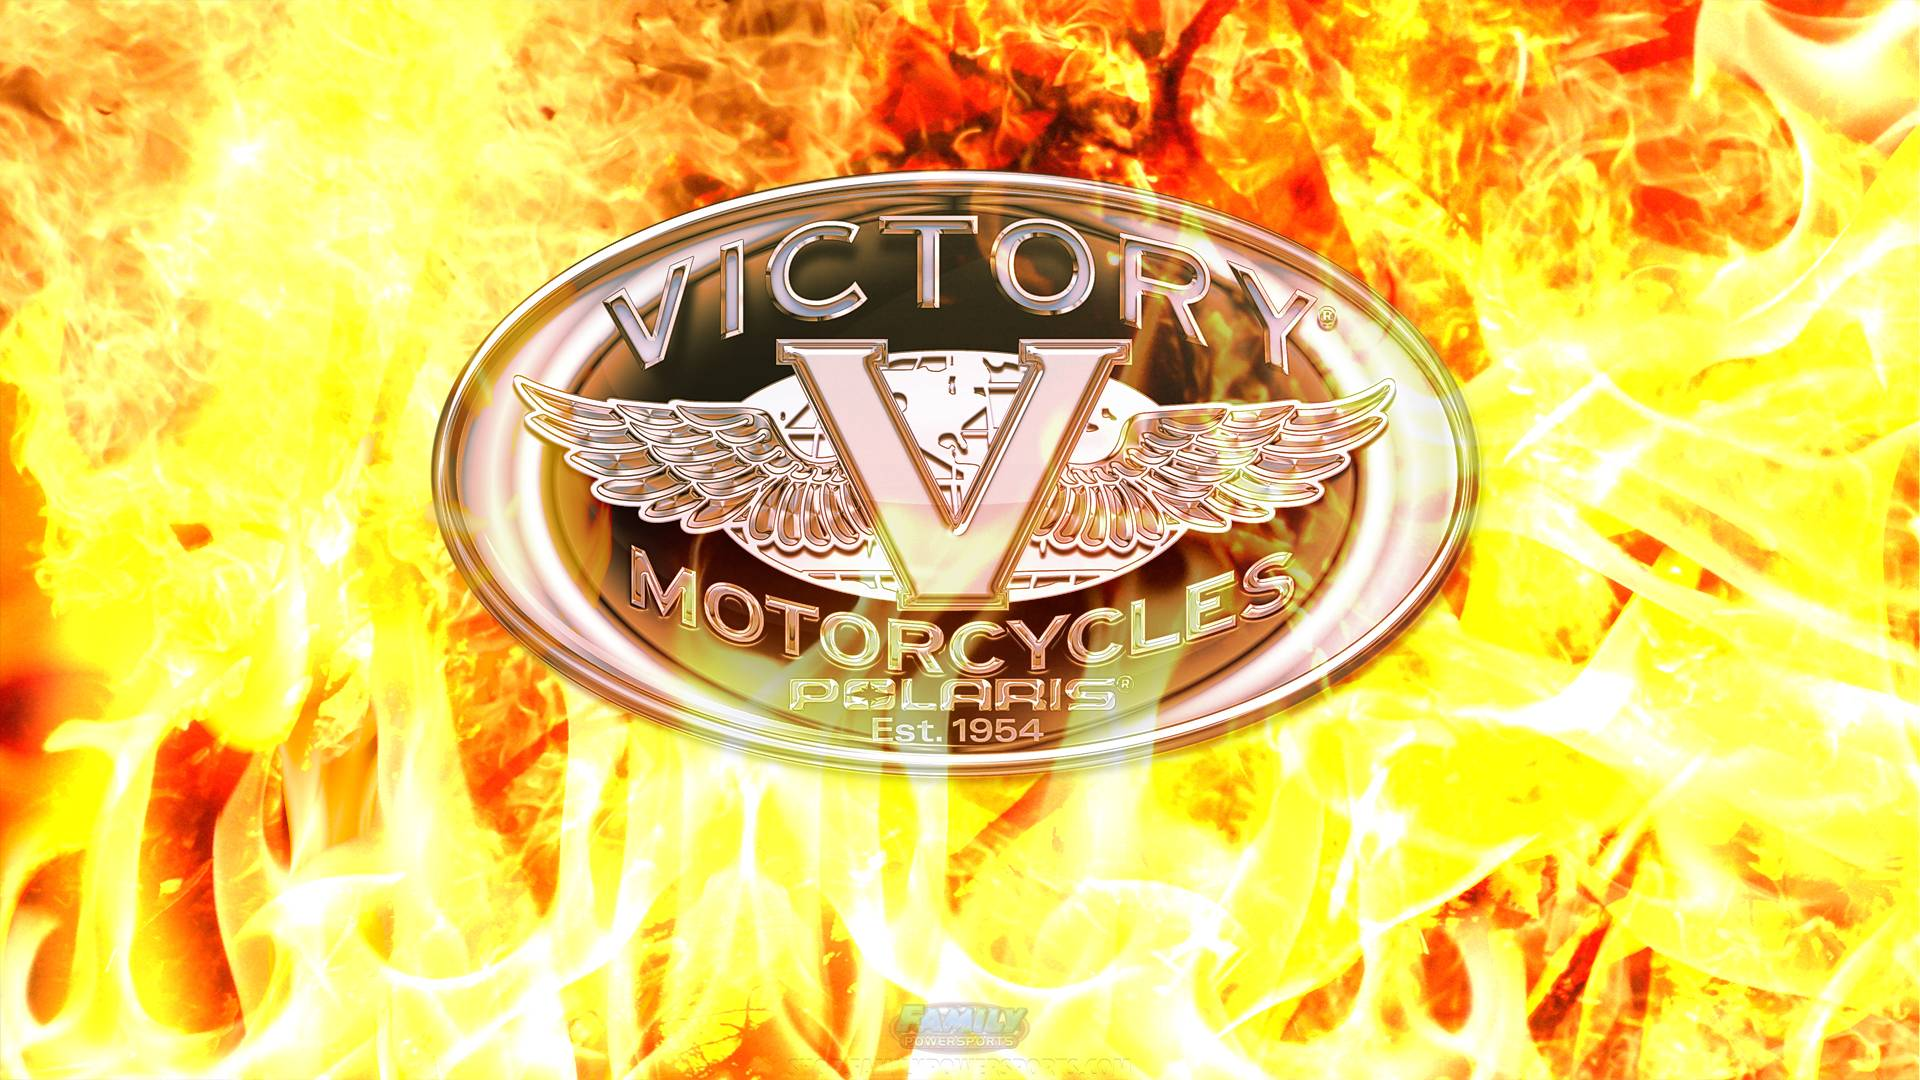 Motorcycle logos 2009 luke van deman - Vehicles For Victory Motorcycles Logo Wallpaper